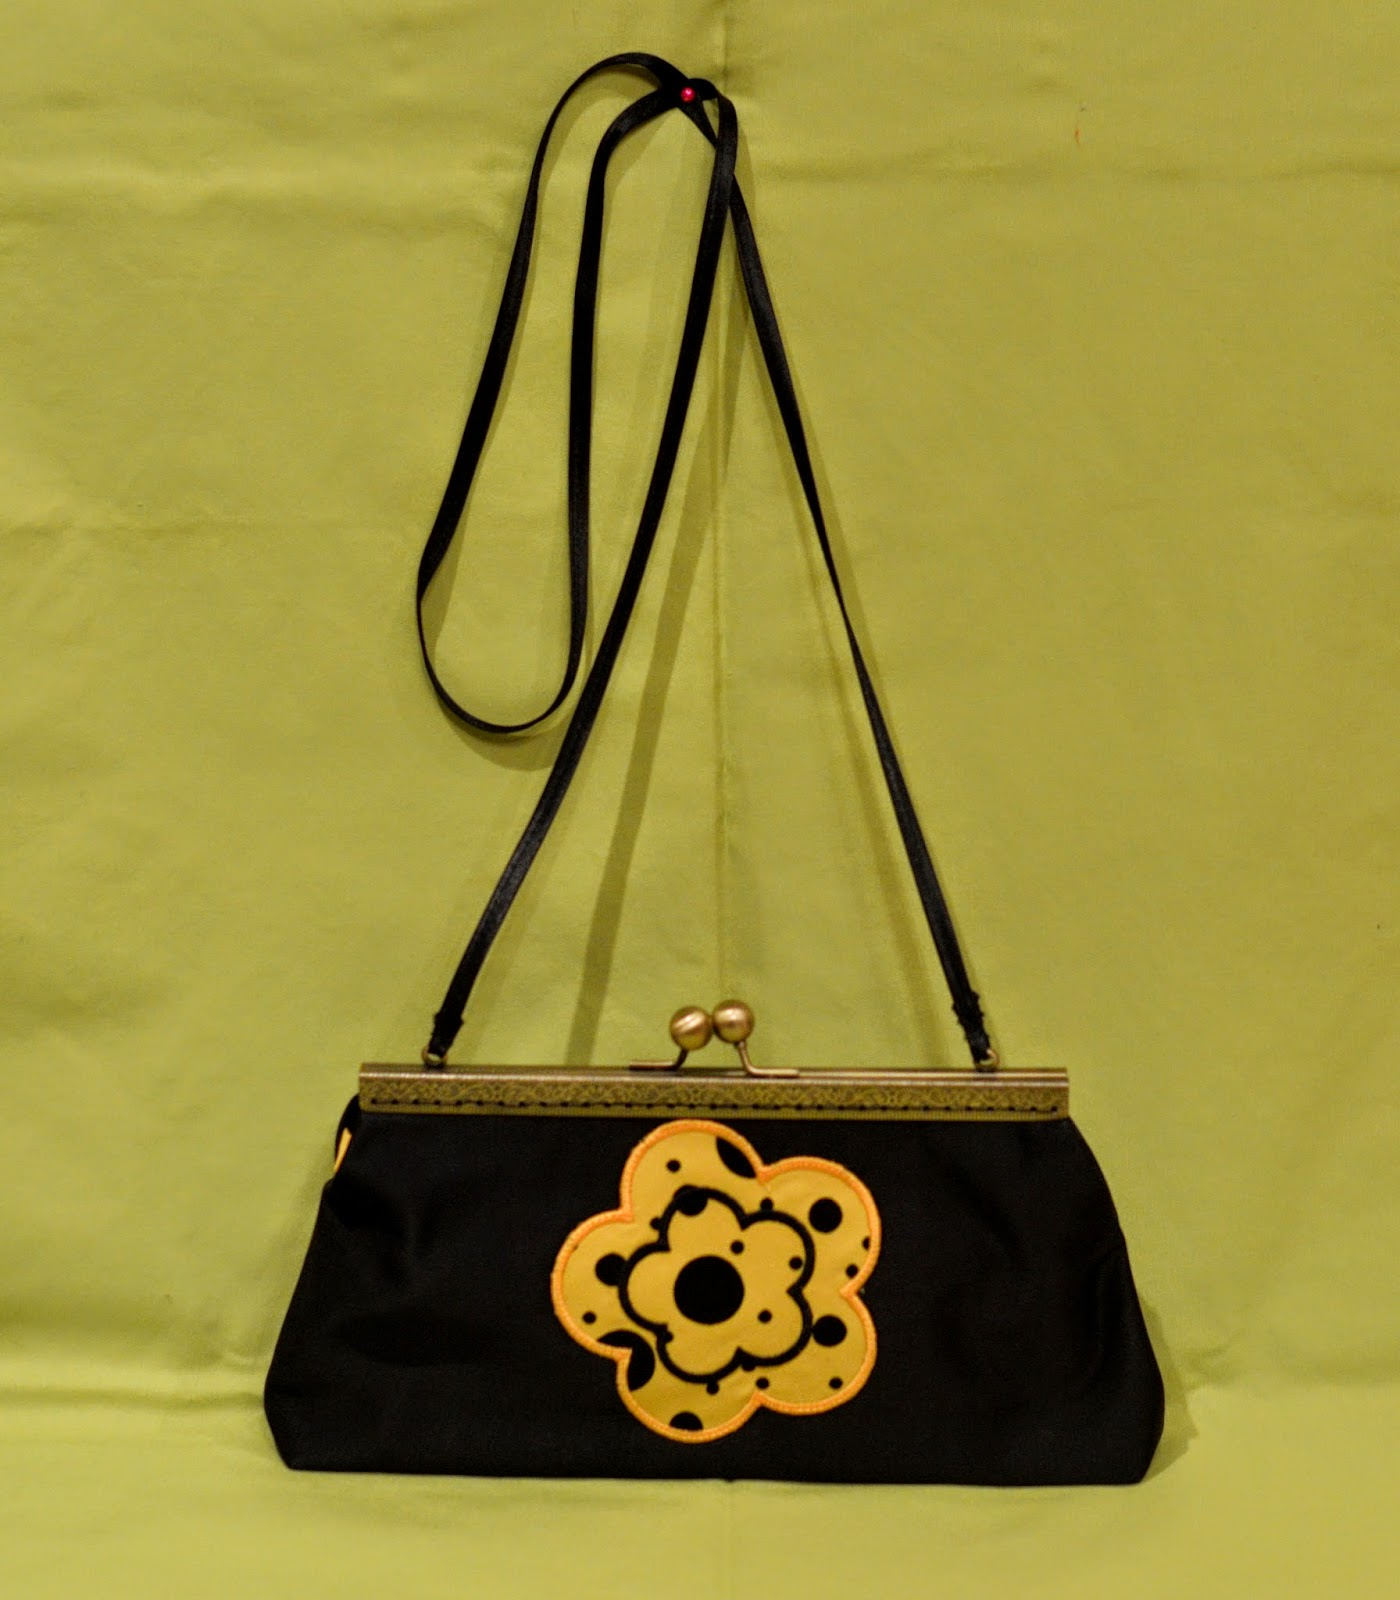 clutch bag with embroidered flower embellishment